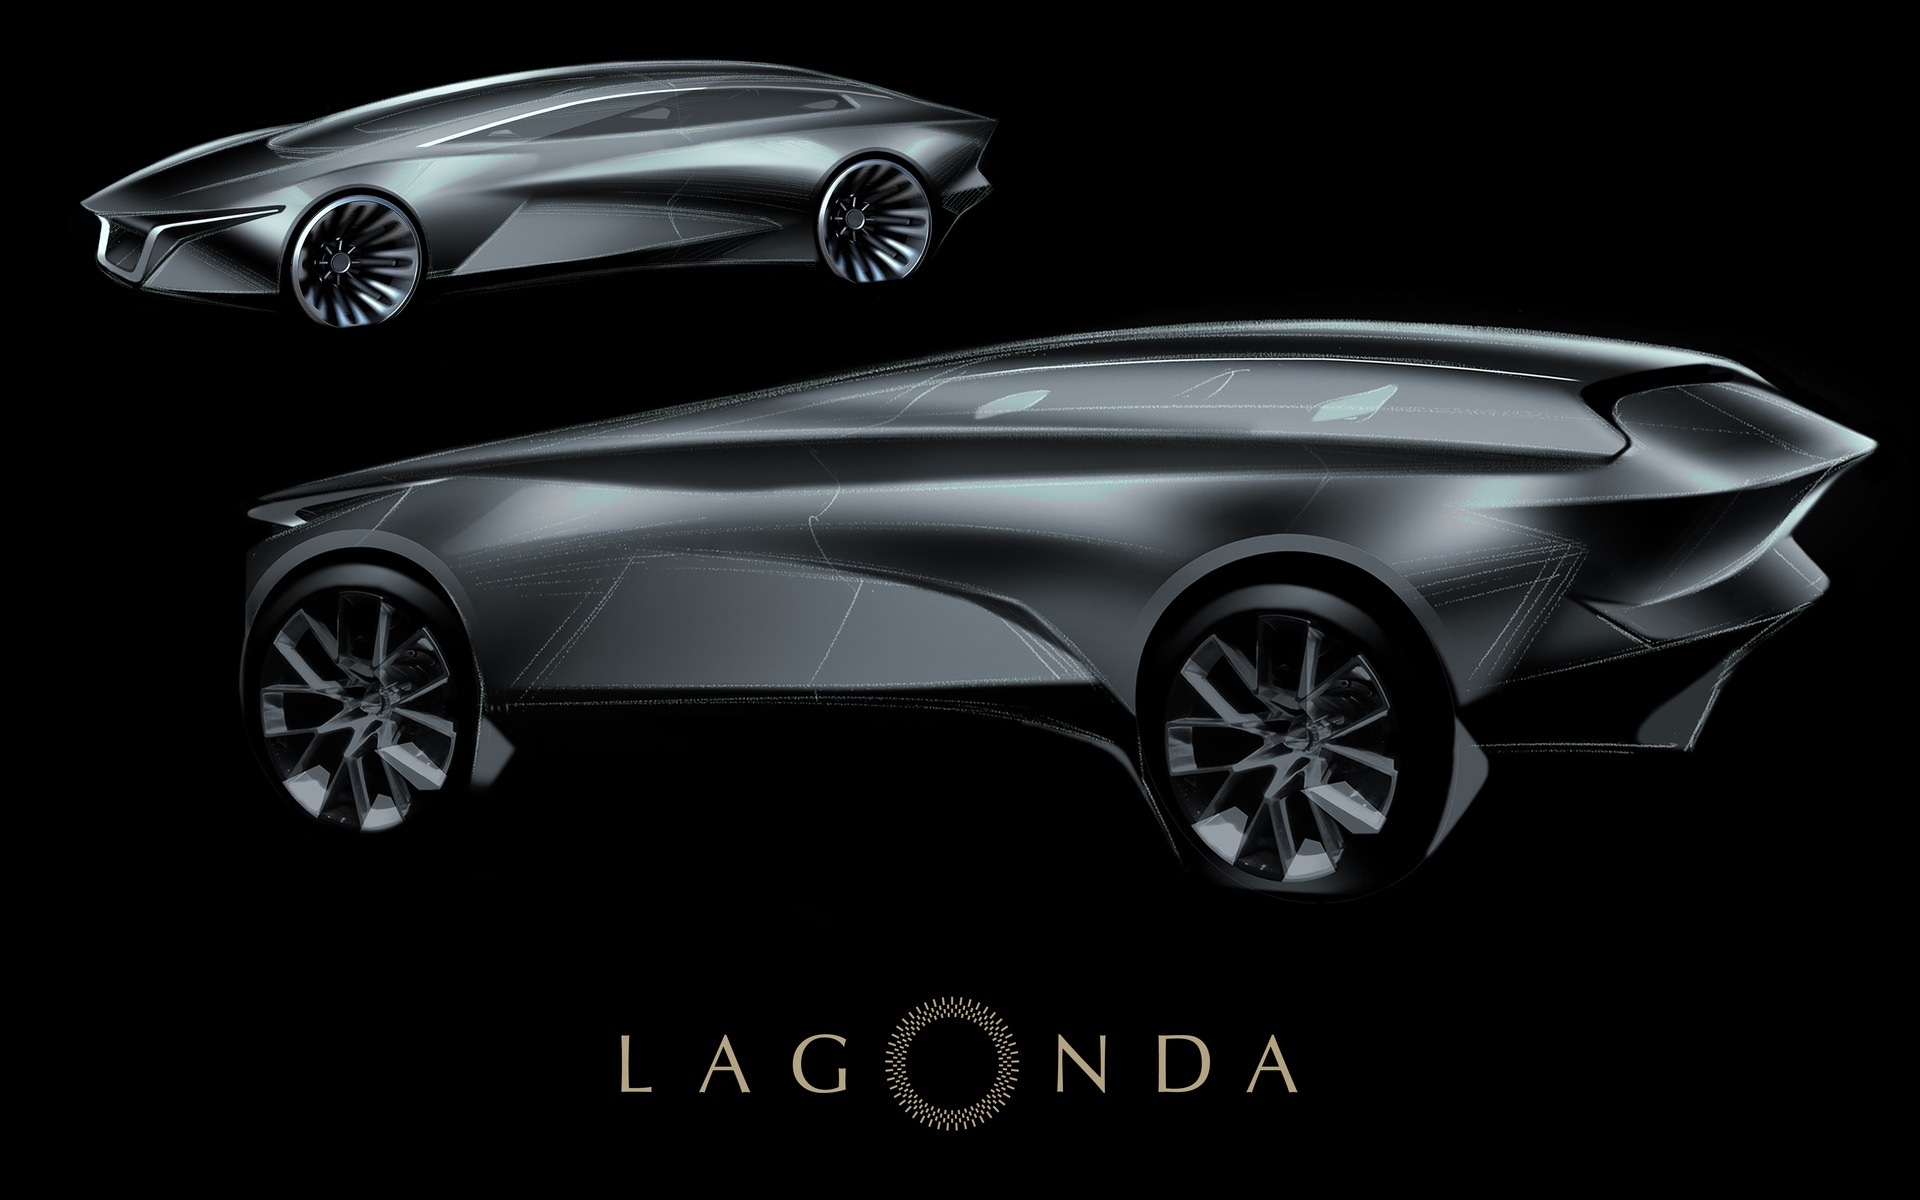 Aston Martin To Relaunch Lagonda Brand With Electric Luxury Suv The Car Guide